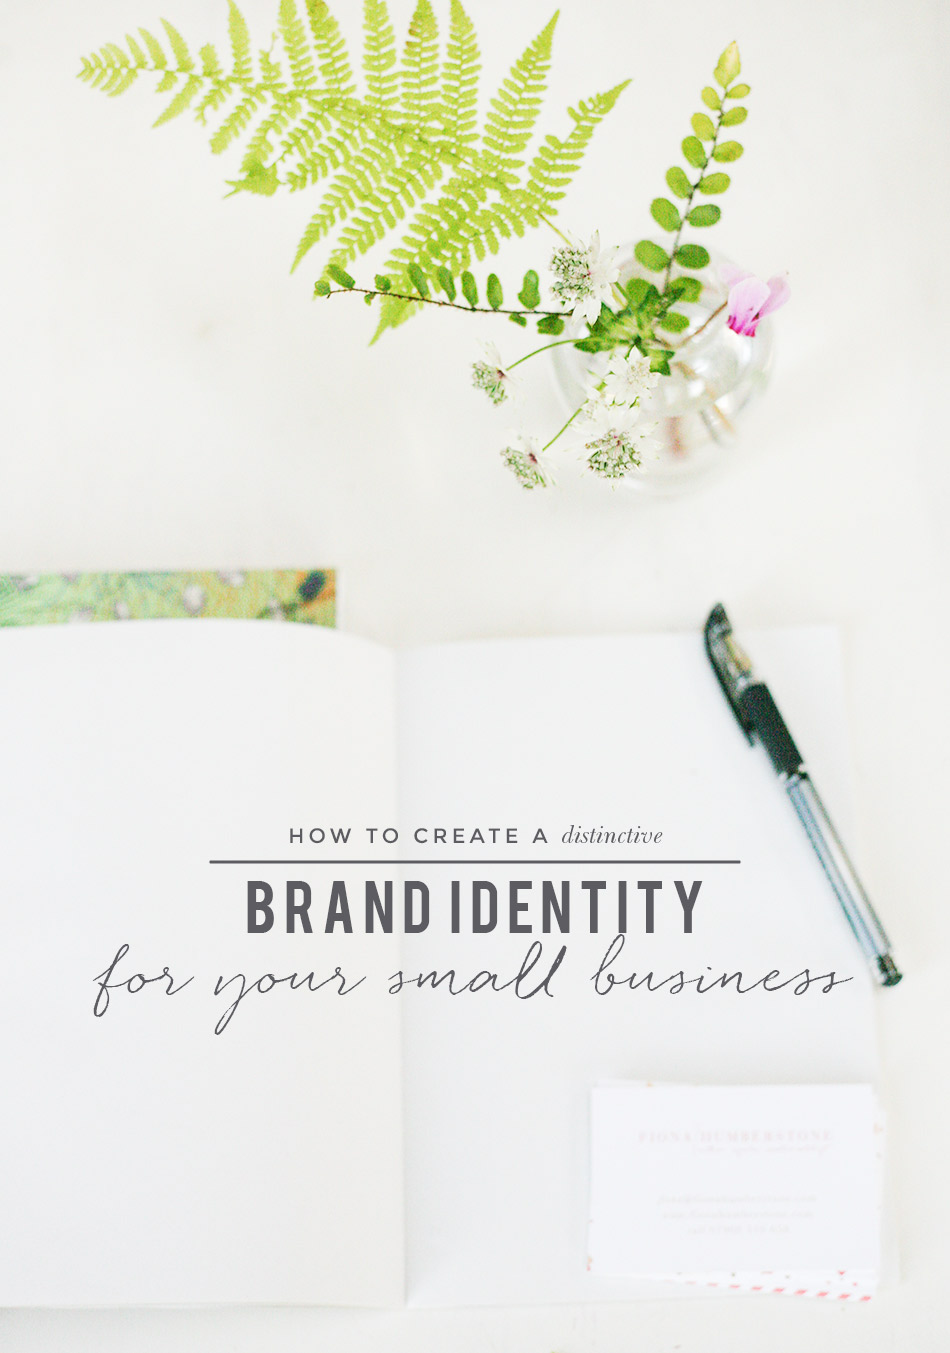 how-to-create-a-distinctive-brand-identity-for-your-small-busienss